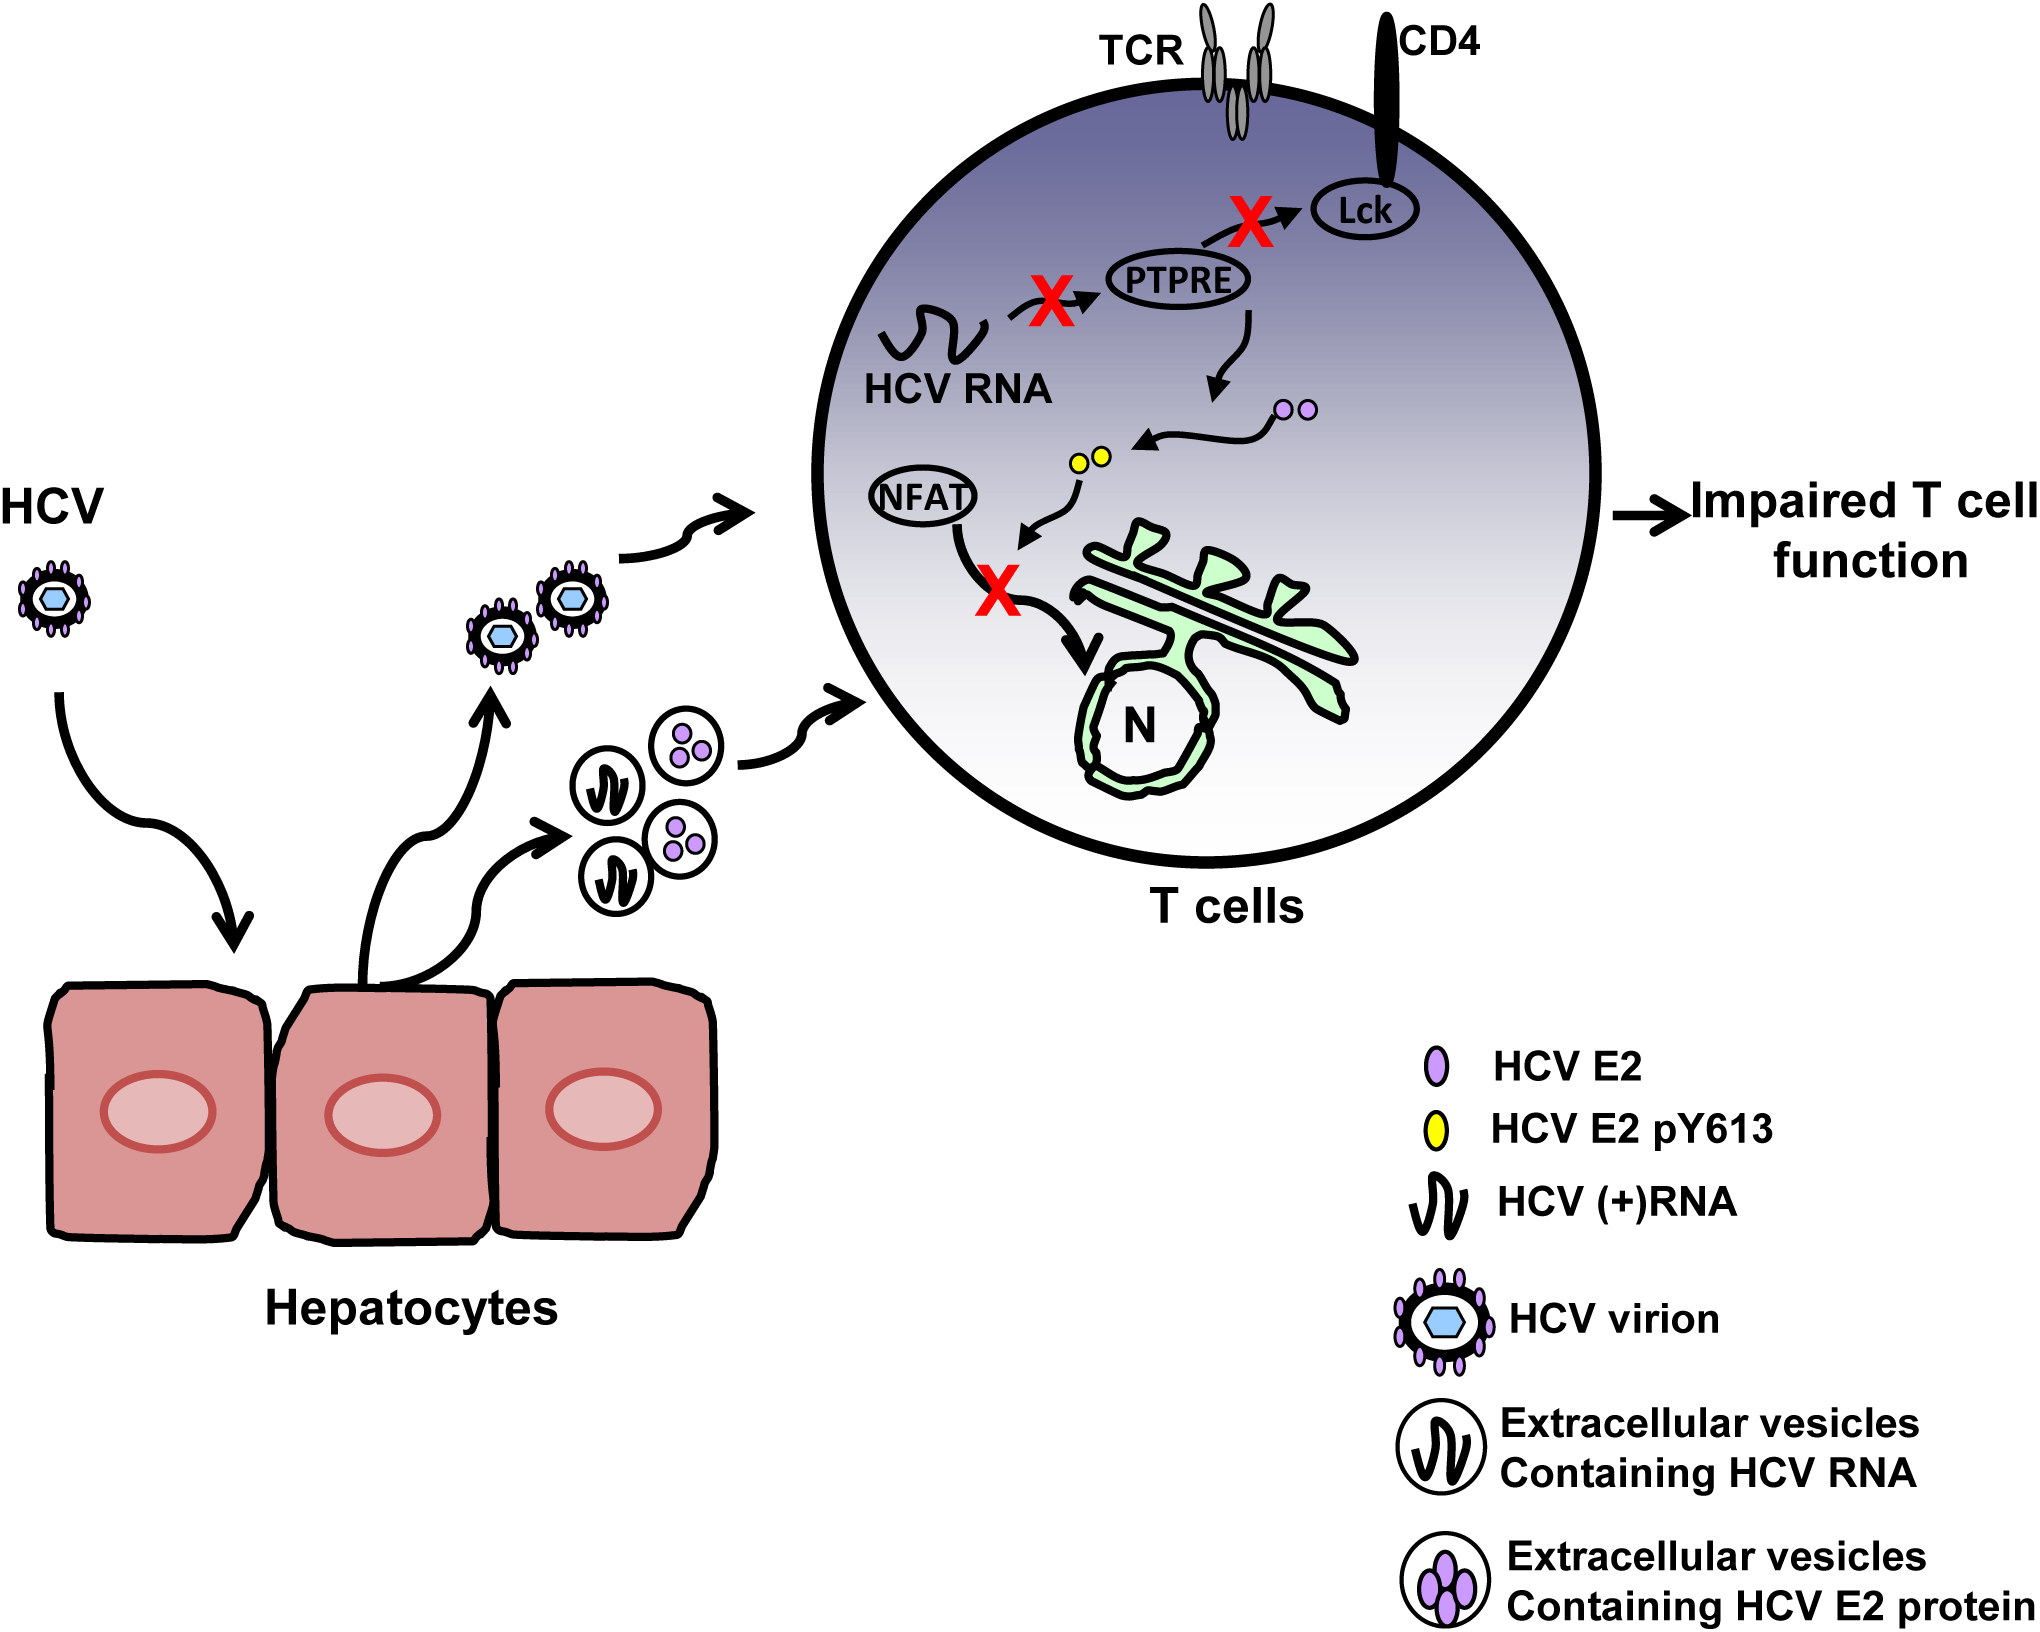 Proposed model for inhibition of T cell receptor (TCR) signaling during HCV infection.